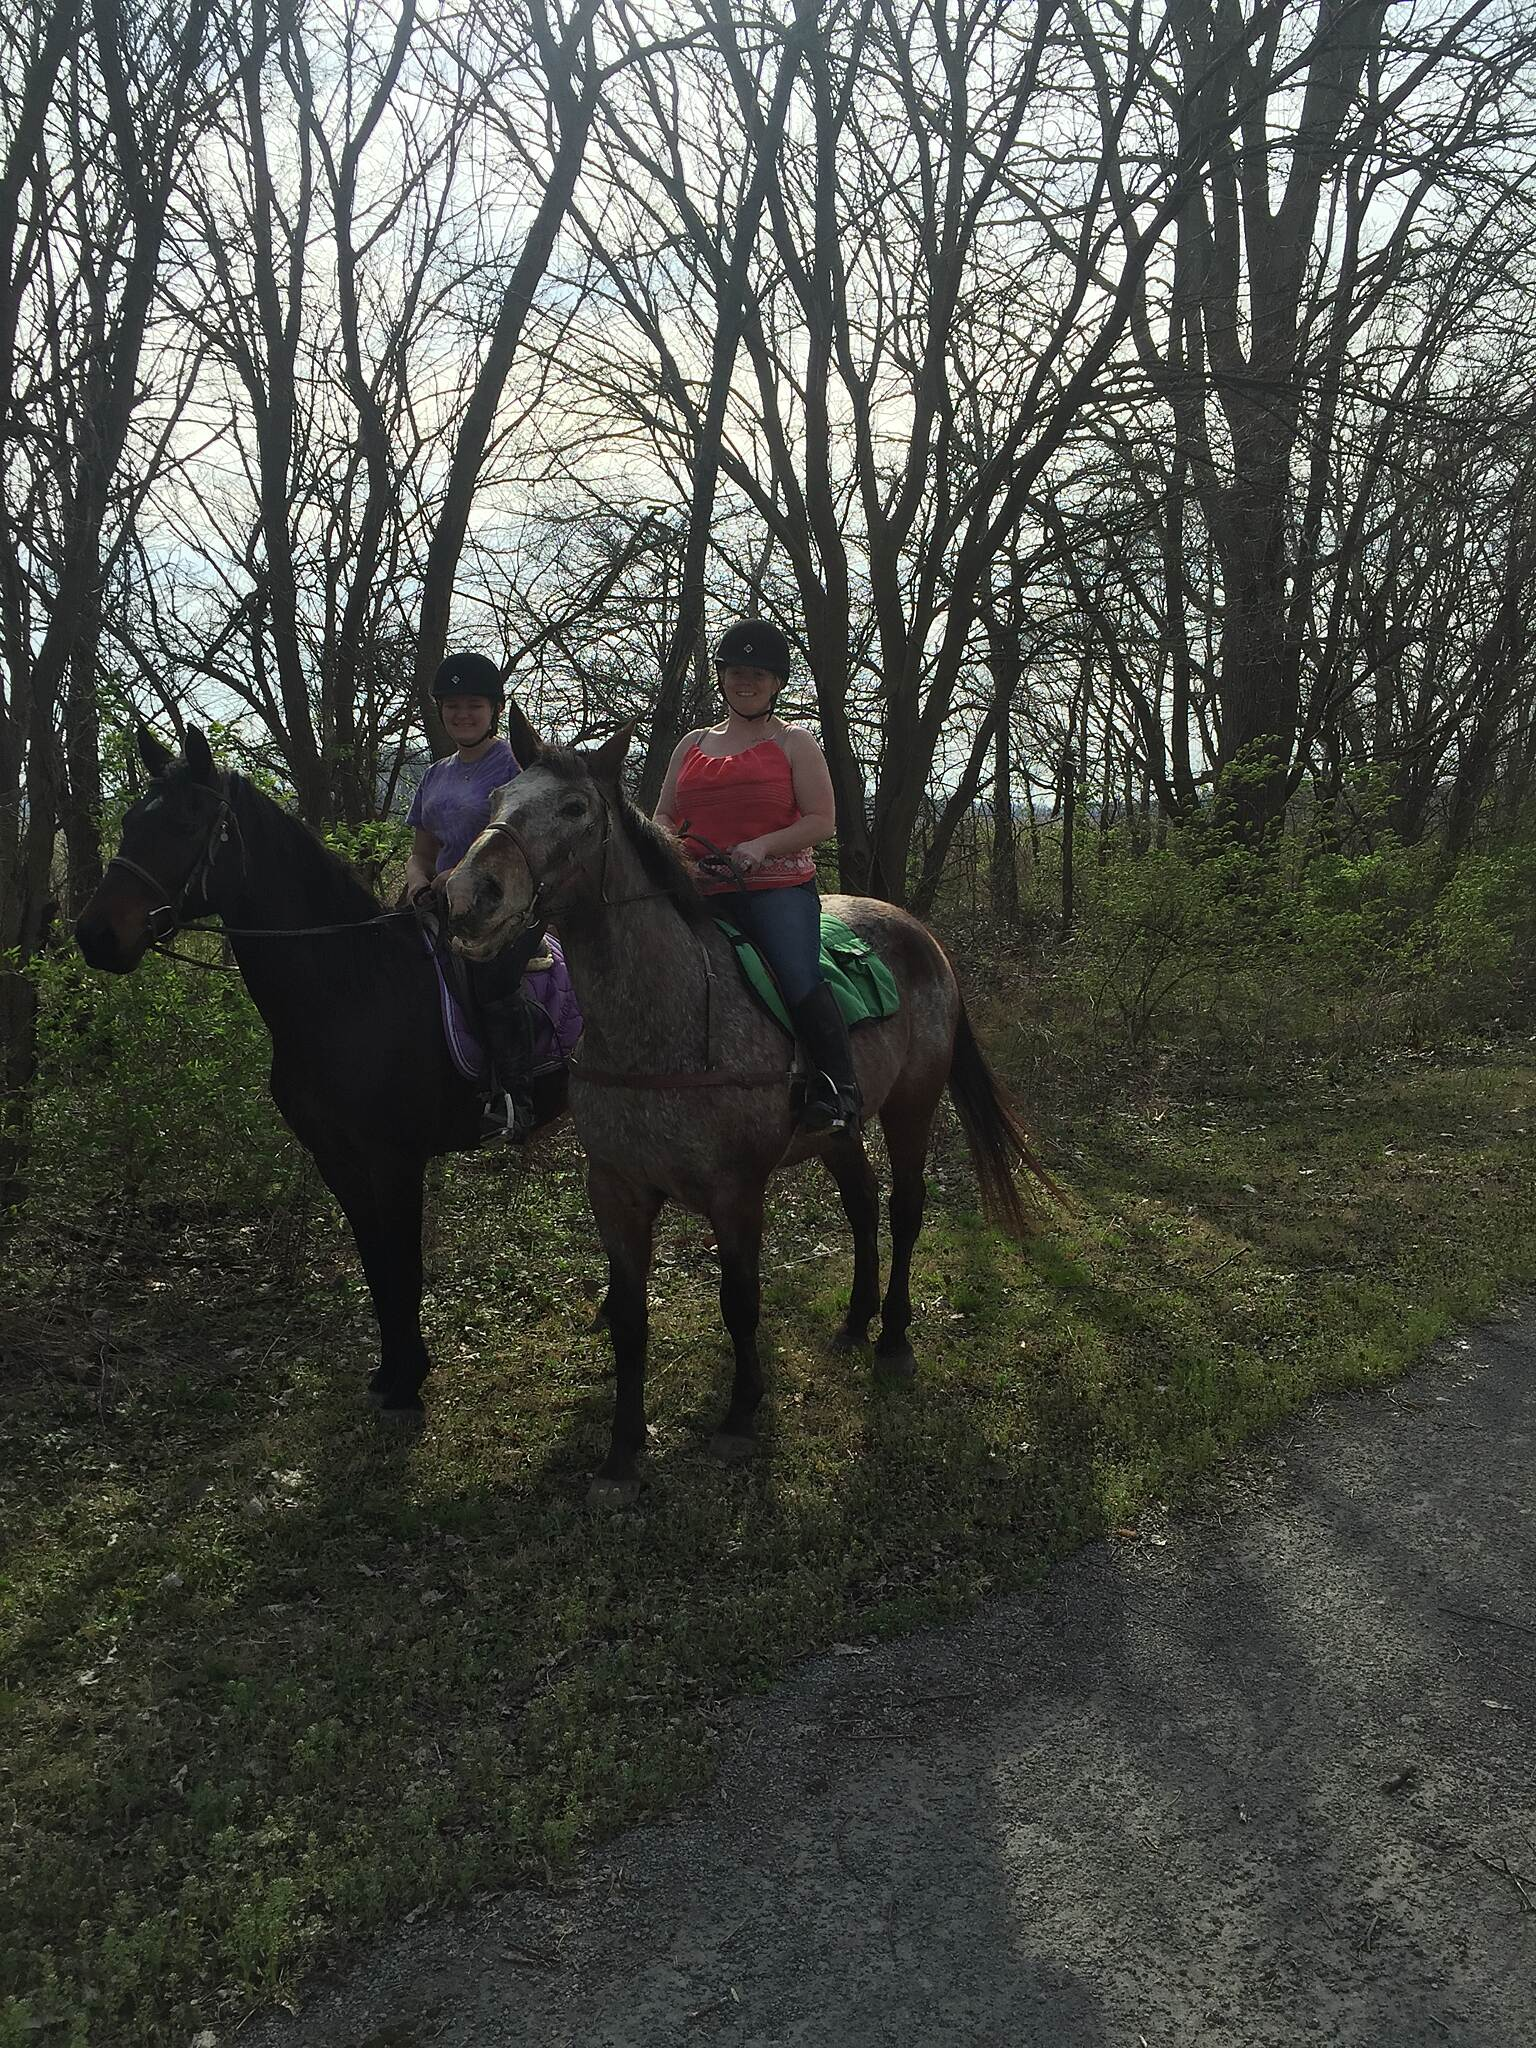 Big 4 Trail (Lebanon to Thorntown) Equestrian Path along the Big-4 Trail Young Equestrian users enjoying the wonderful Spring day on the Big-4 Trail near Lebanon.